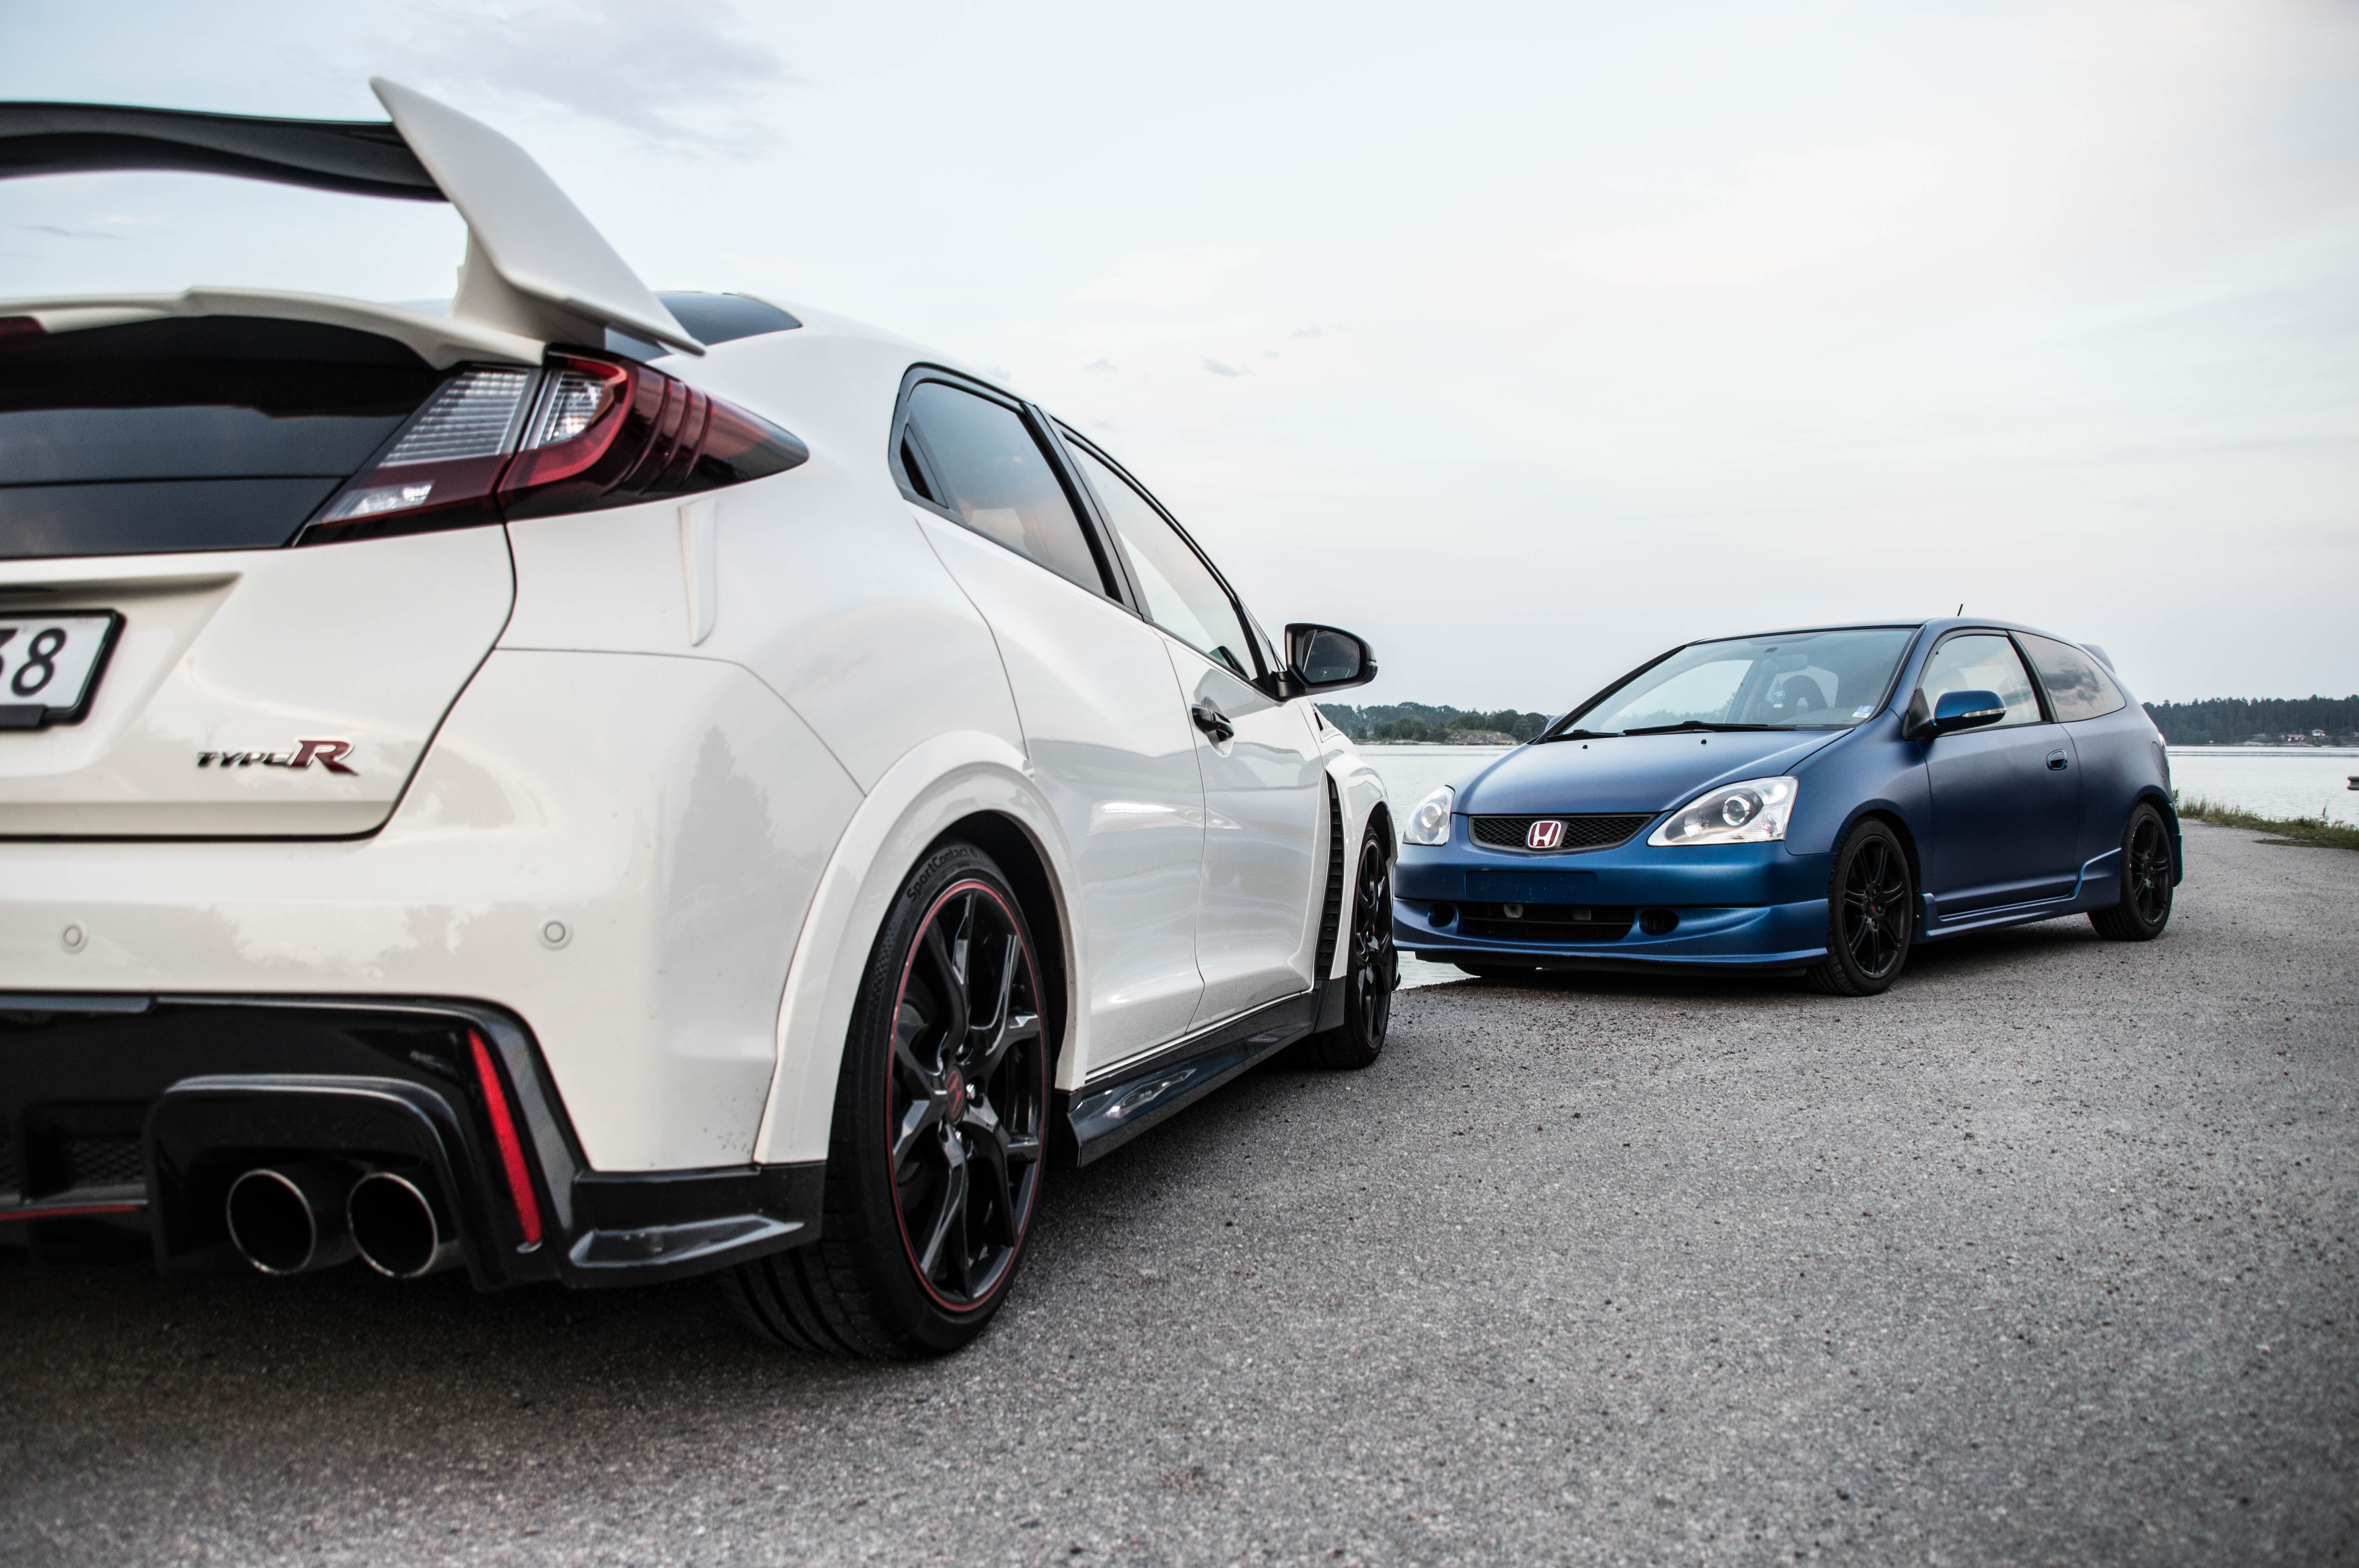 honda civic type r fk2 m ter civic type r ep3. Black Bedroom Furniture Sets. Home Design Ideas